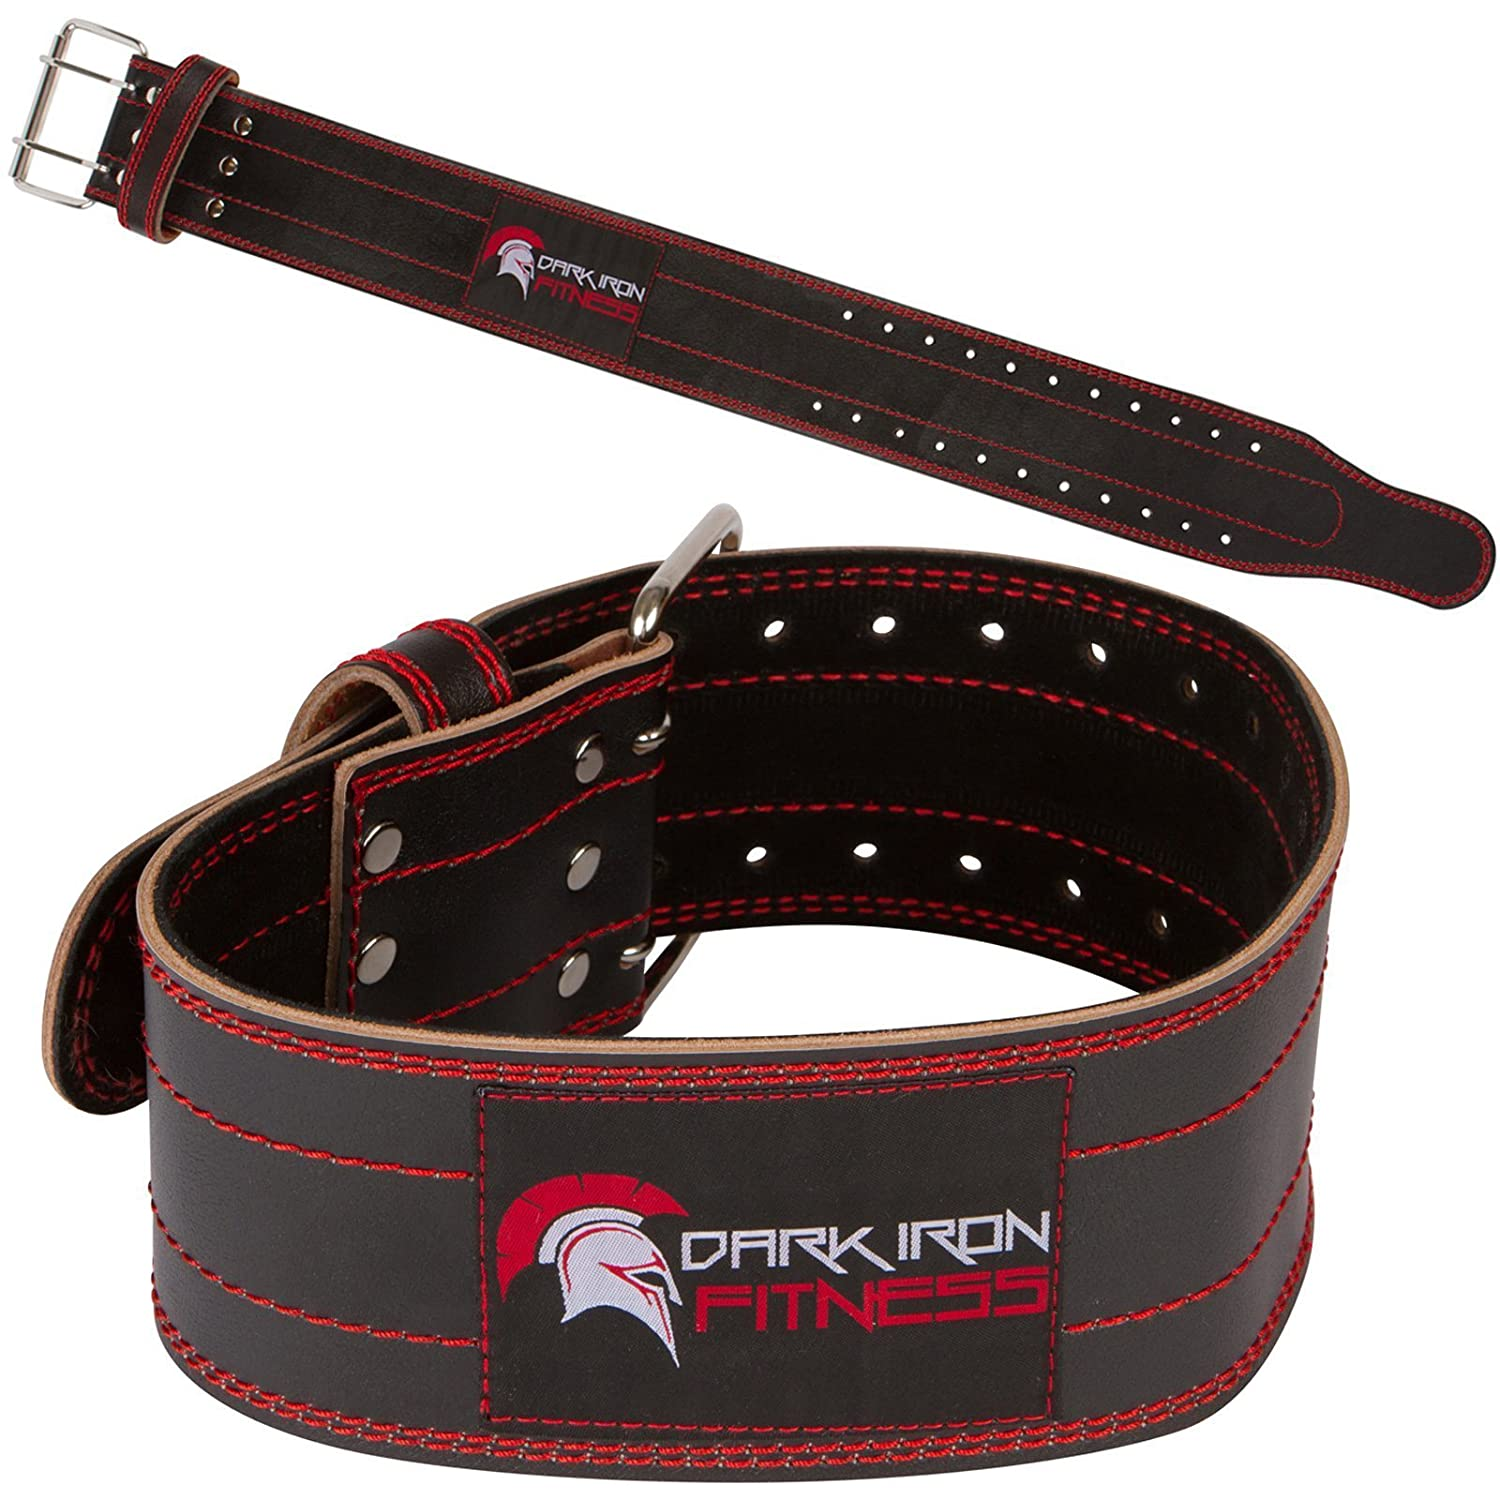 #2. Genuine Leather Pro Weightlifting Belt for Men and Women